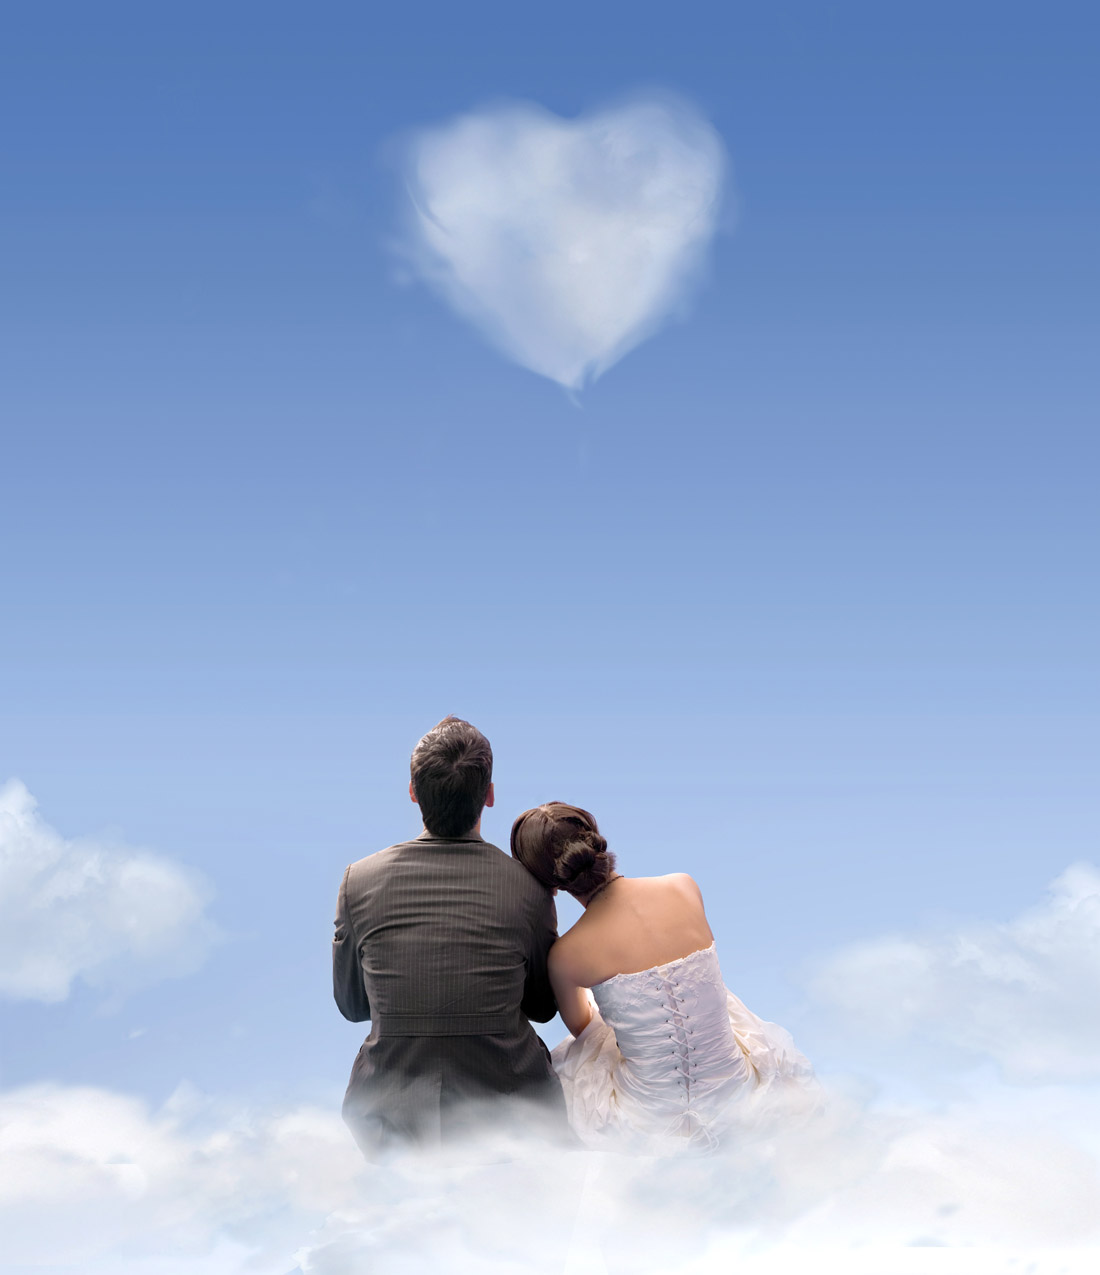 Romantic heart-shaped clouds 16615